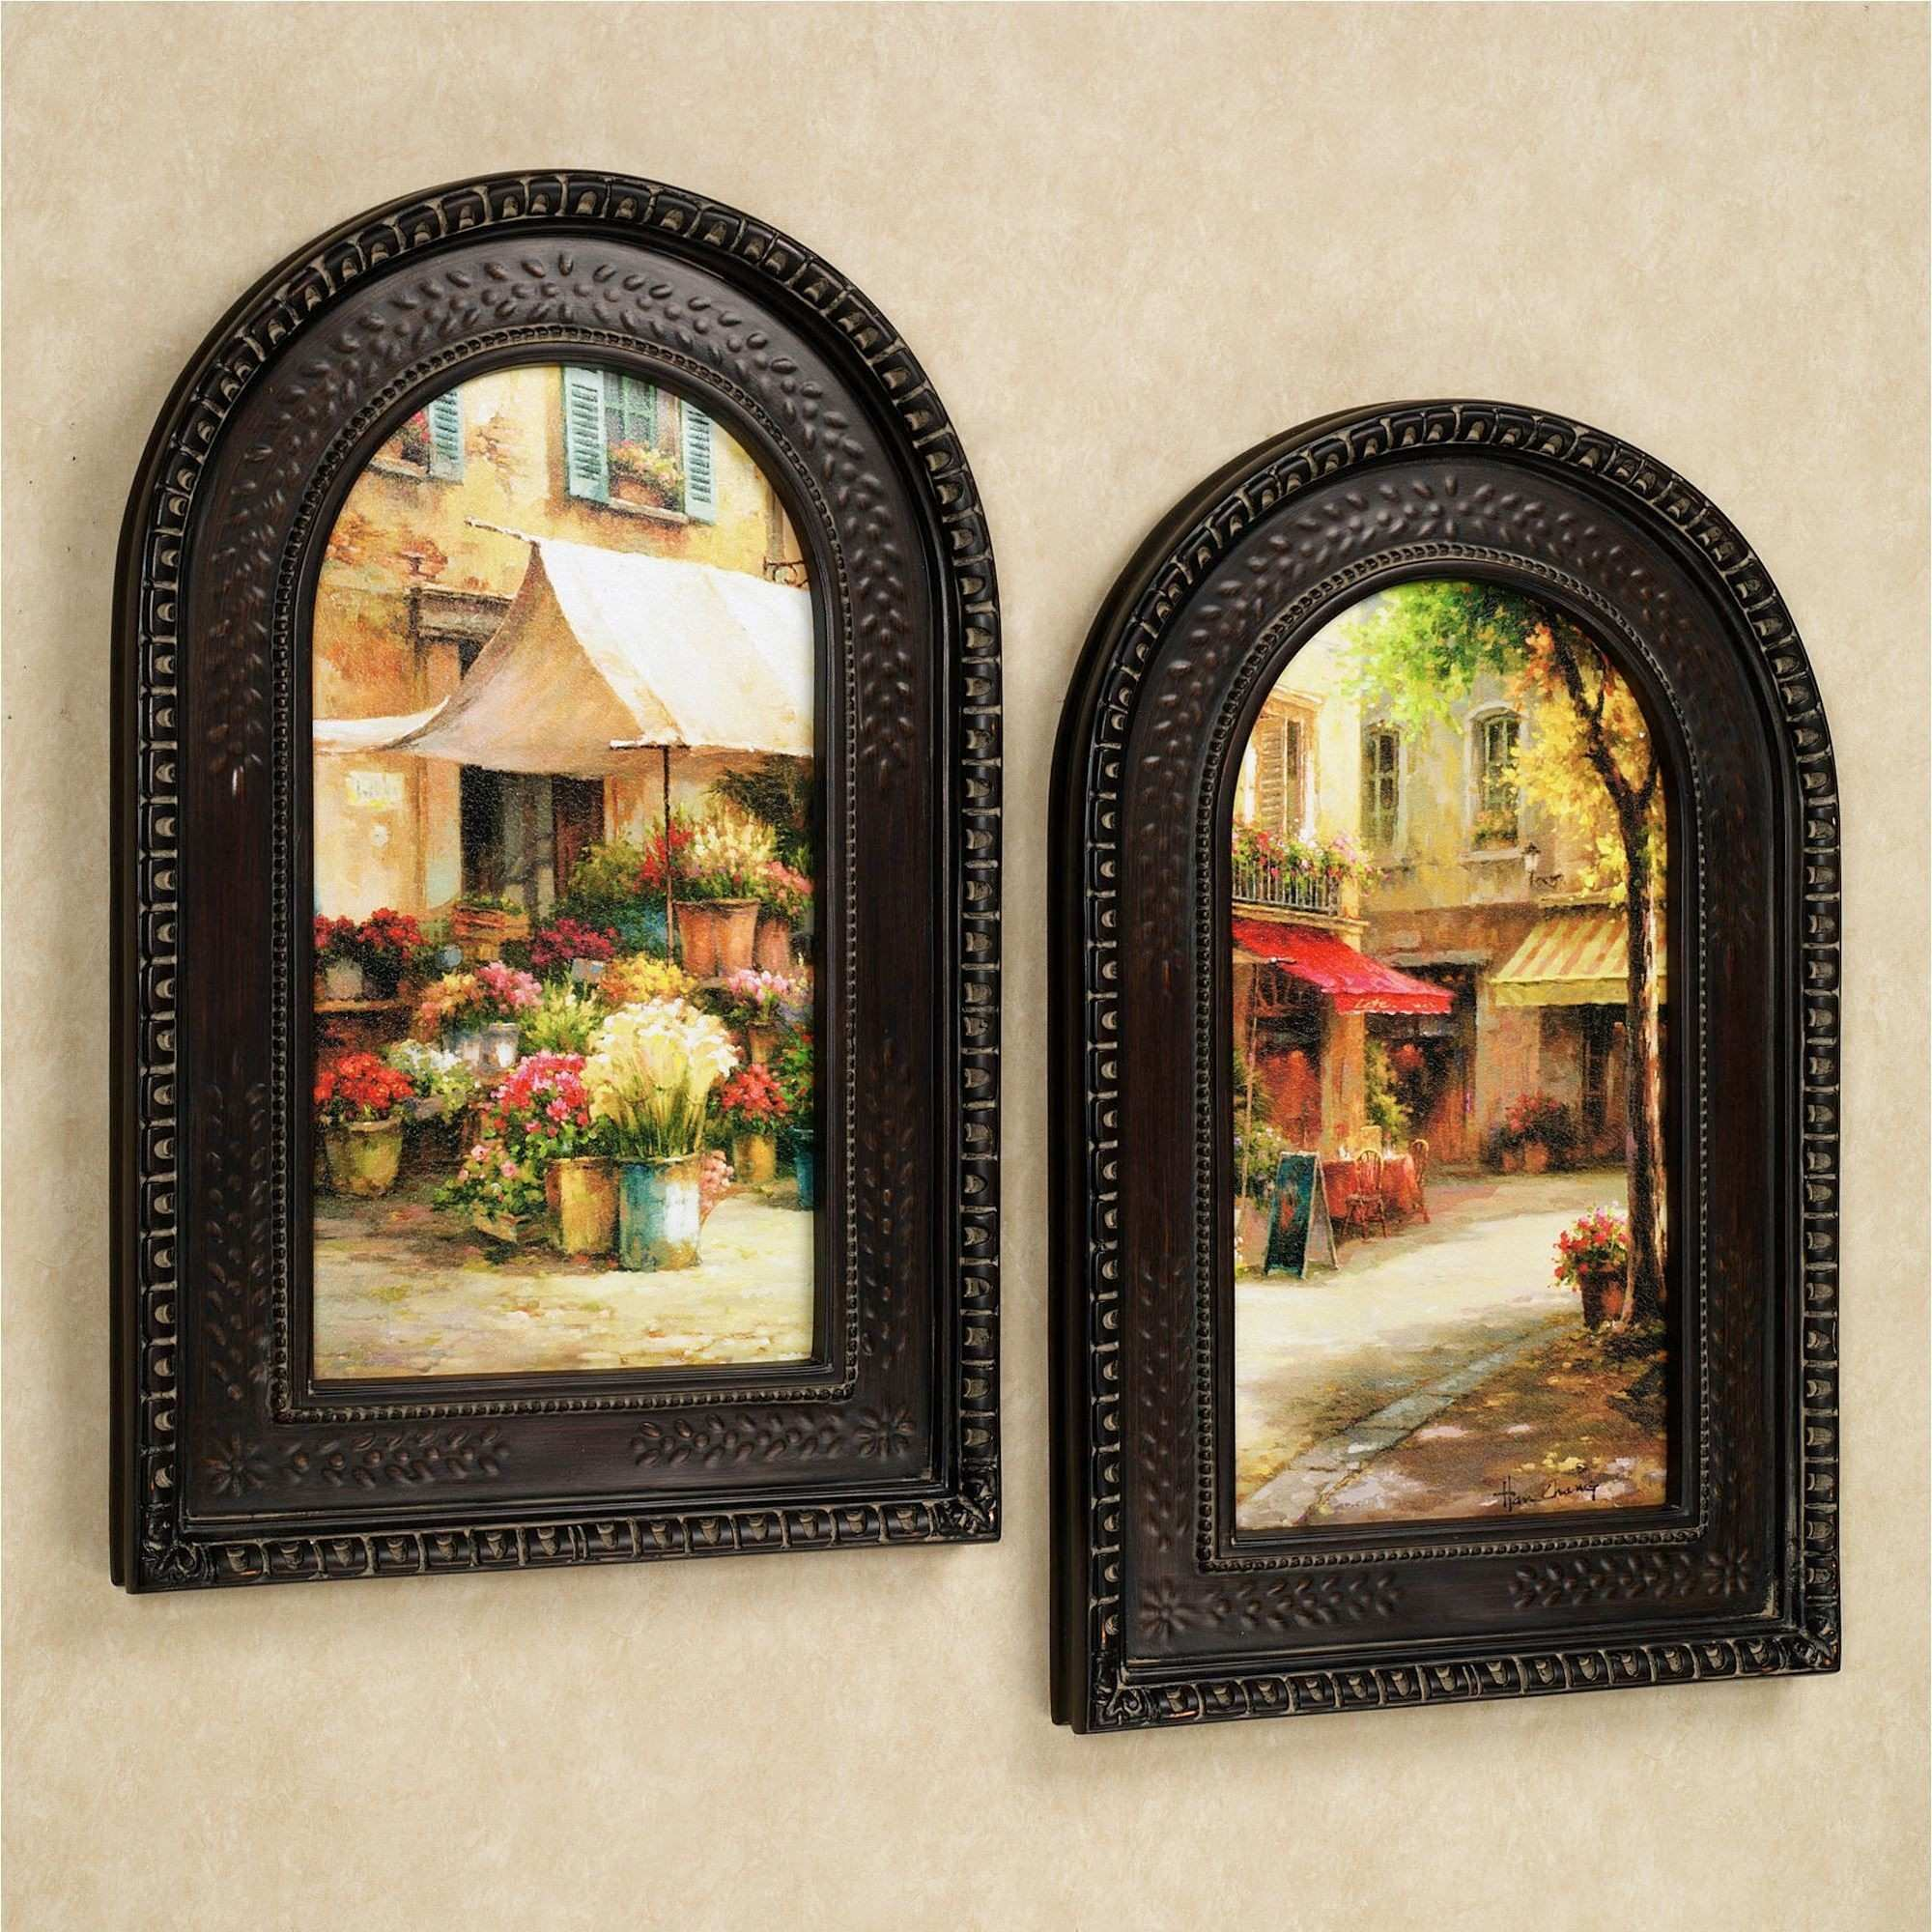 Arched Picture Frame Unique the Flower Market Arched Framed Wall Art